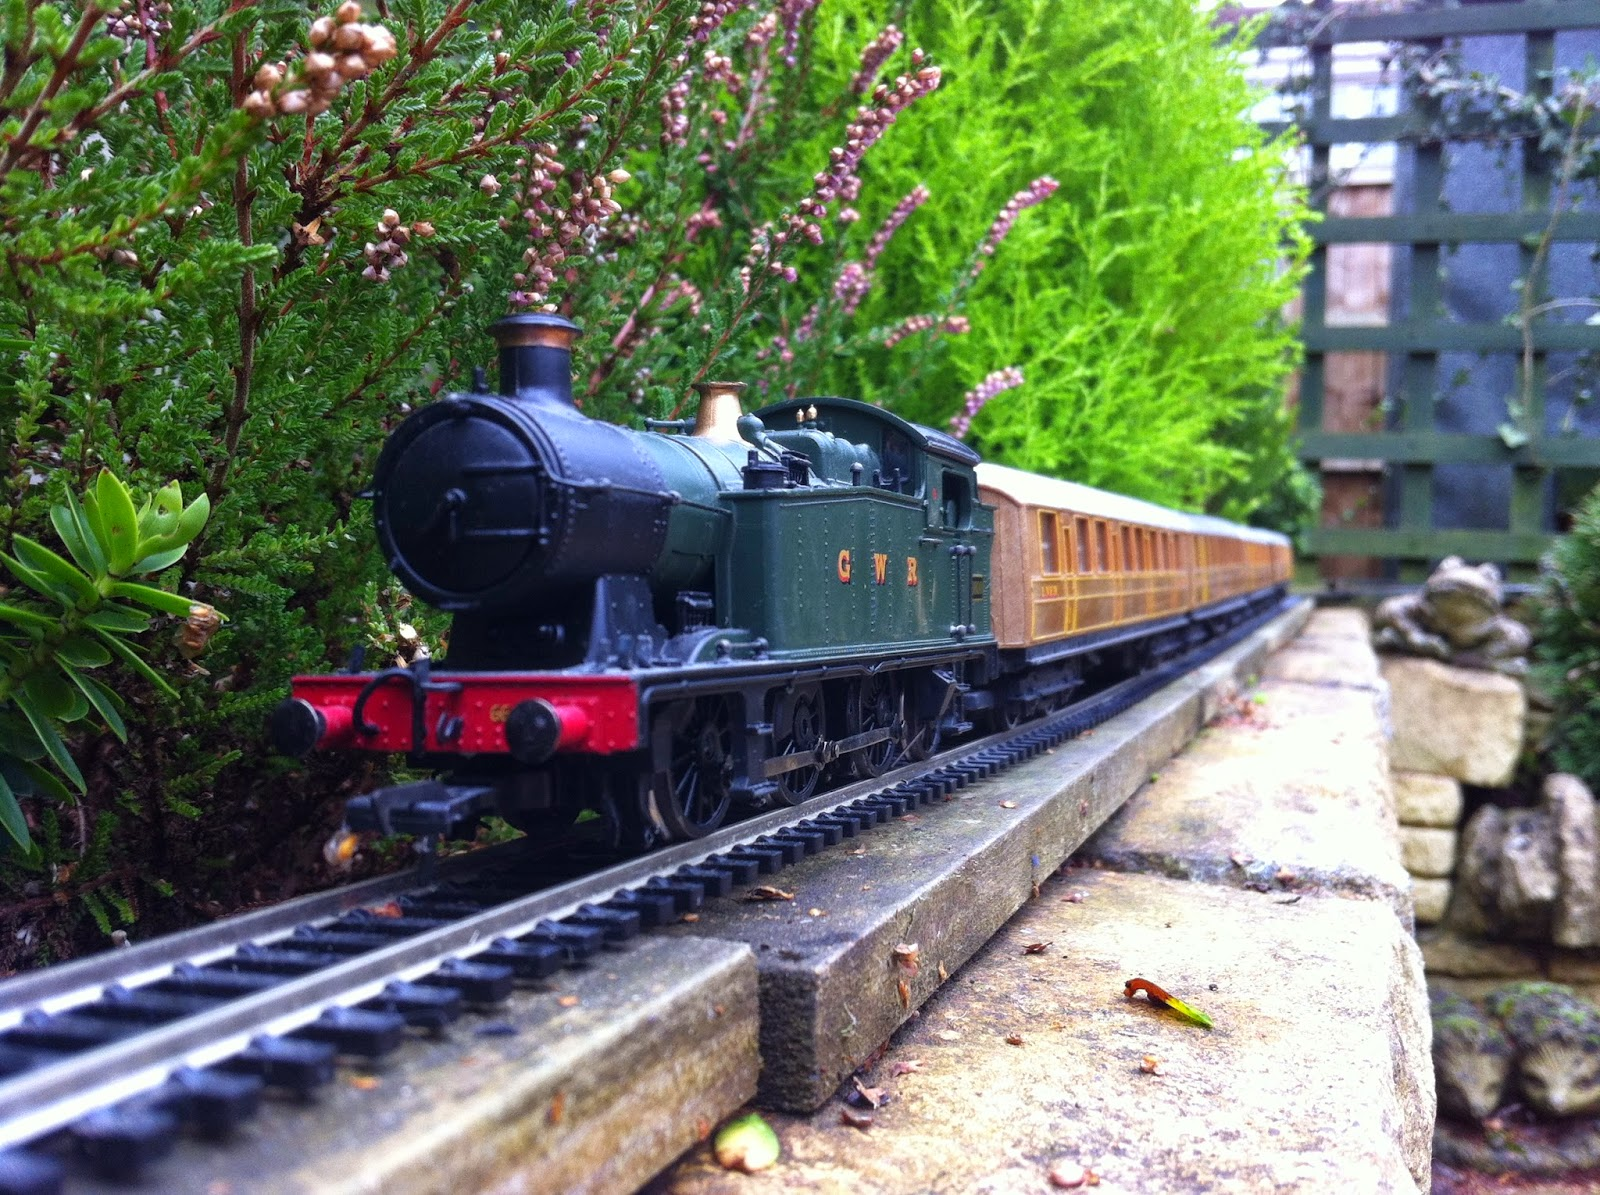 Superb This Week Iu0027ve Been On Afternoons Again And With Little To Do In The  Workshop Have Found Myself Finally Reviving The Garden Railway. Started In  2005, The 00 ...